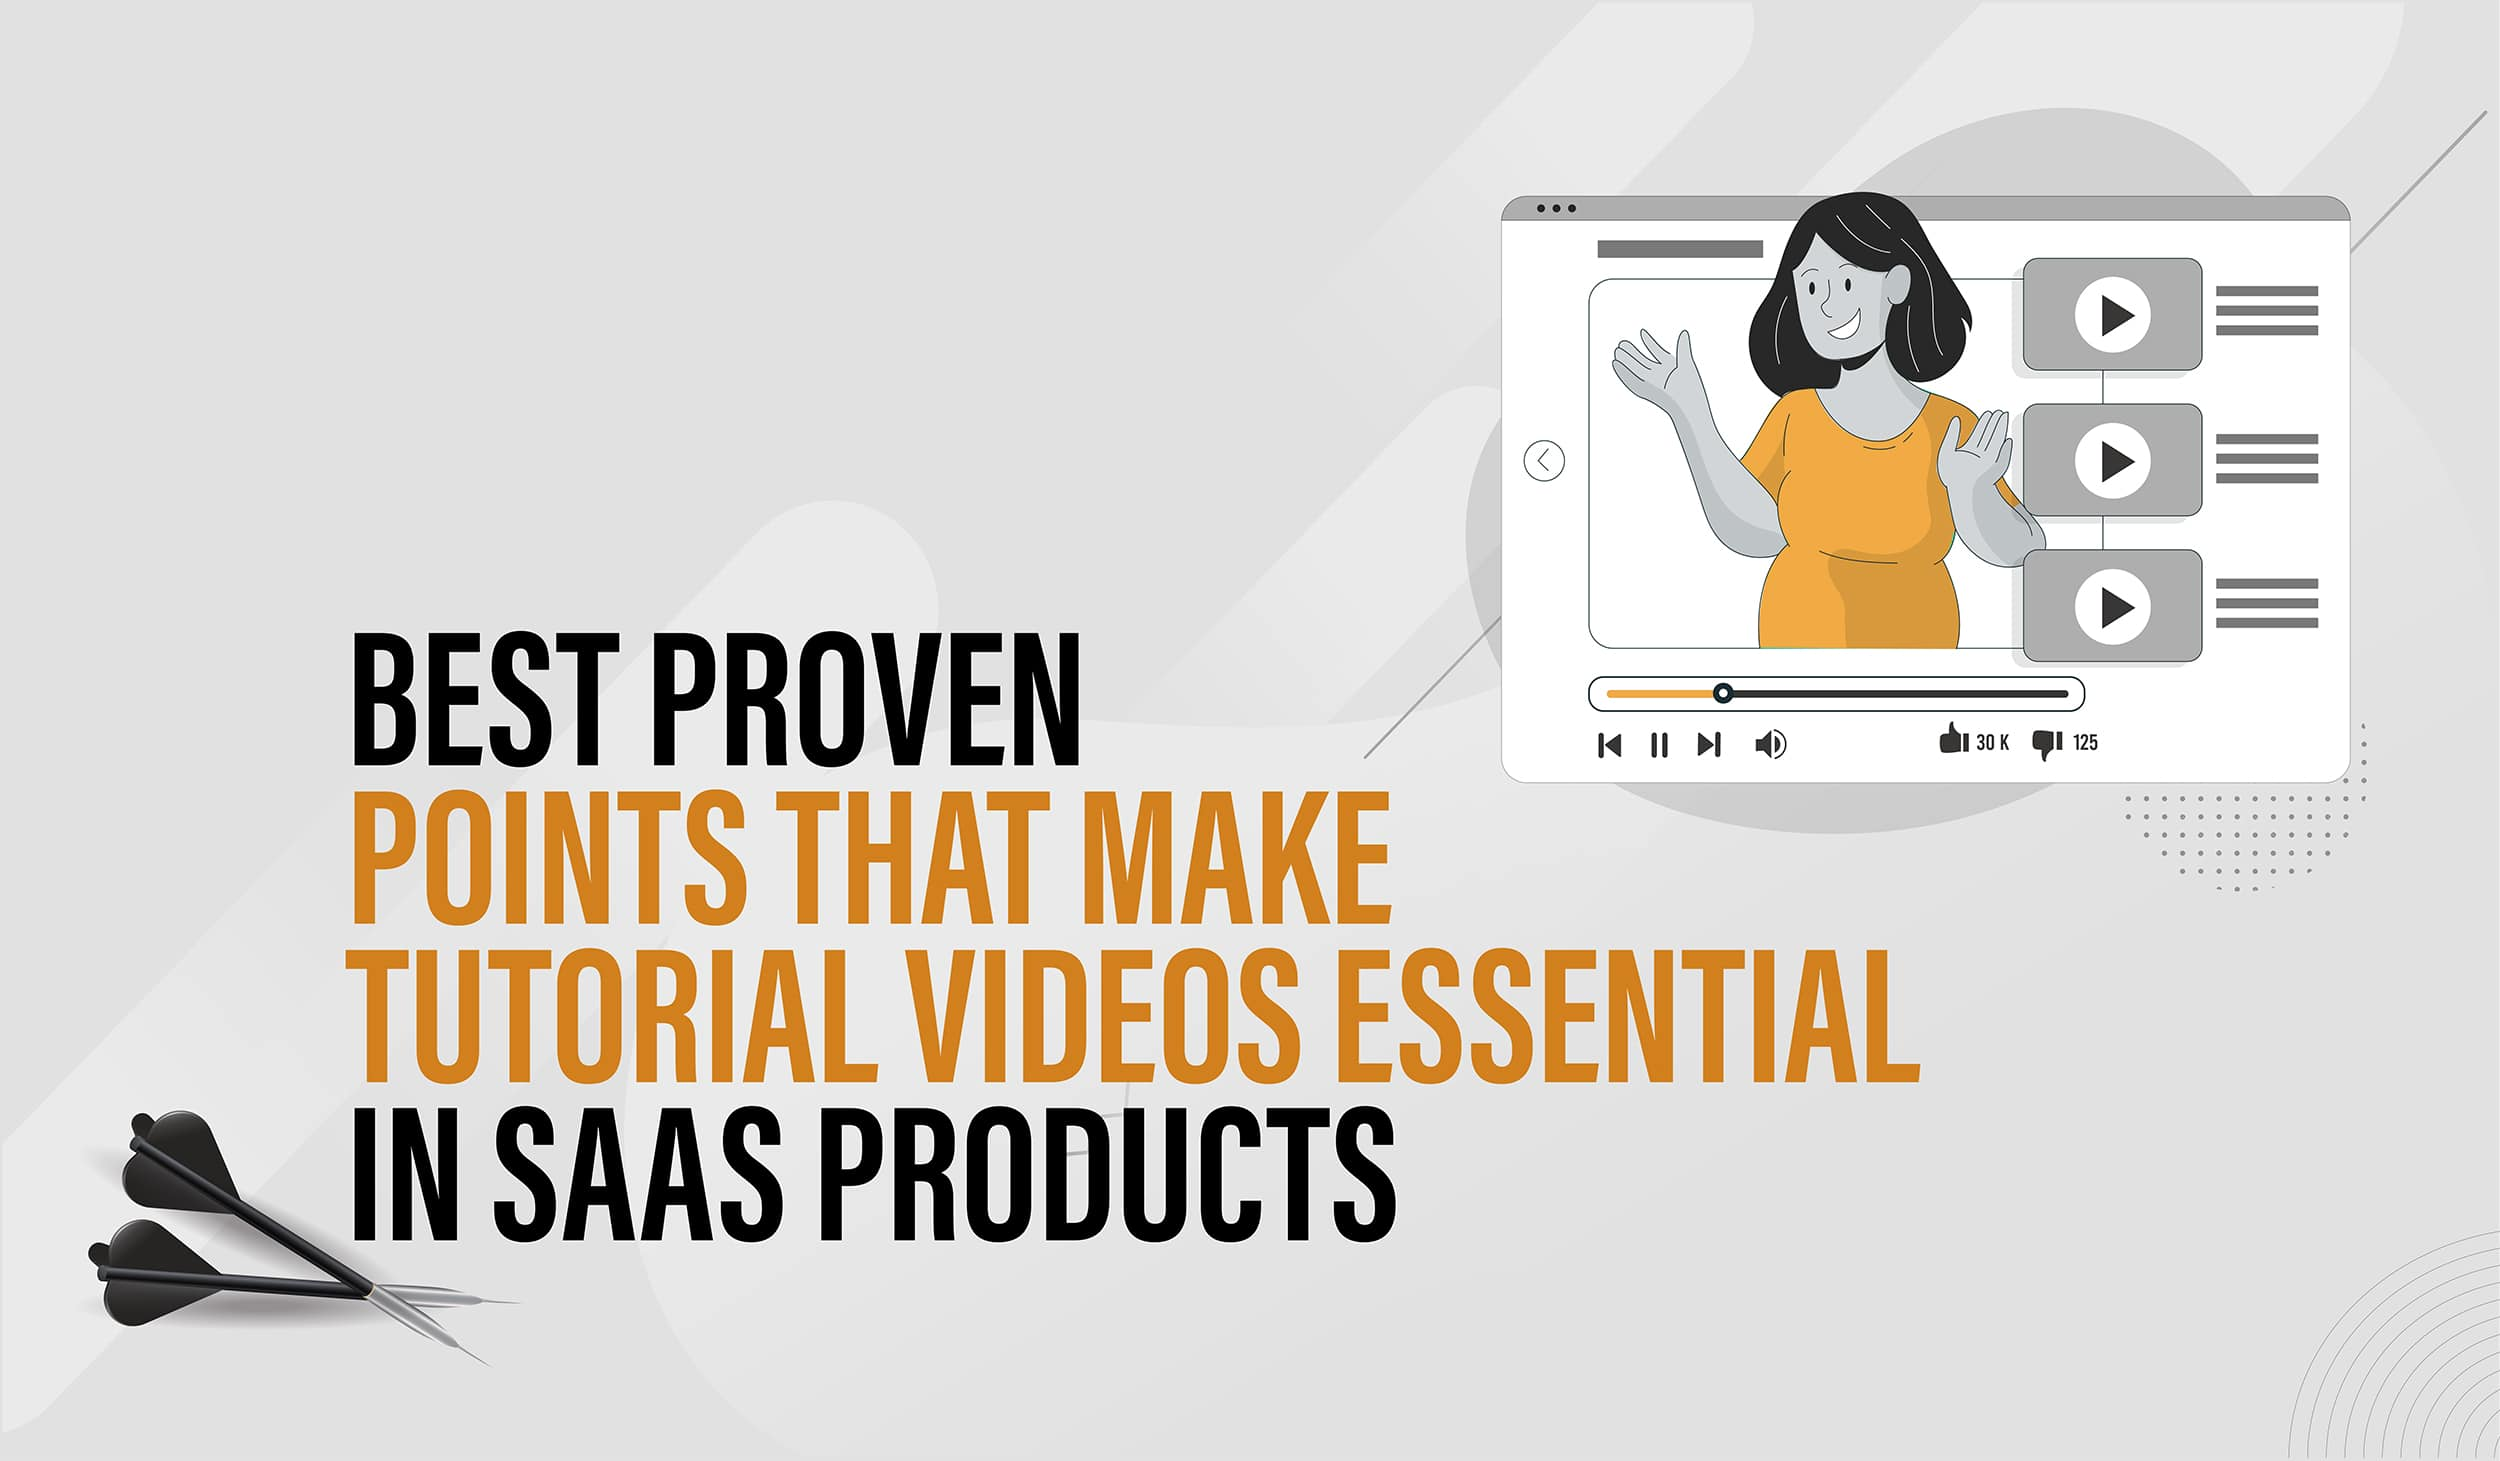 Best proven points that make tutorial videos essential in SaaS products